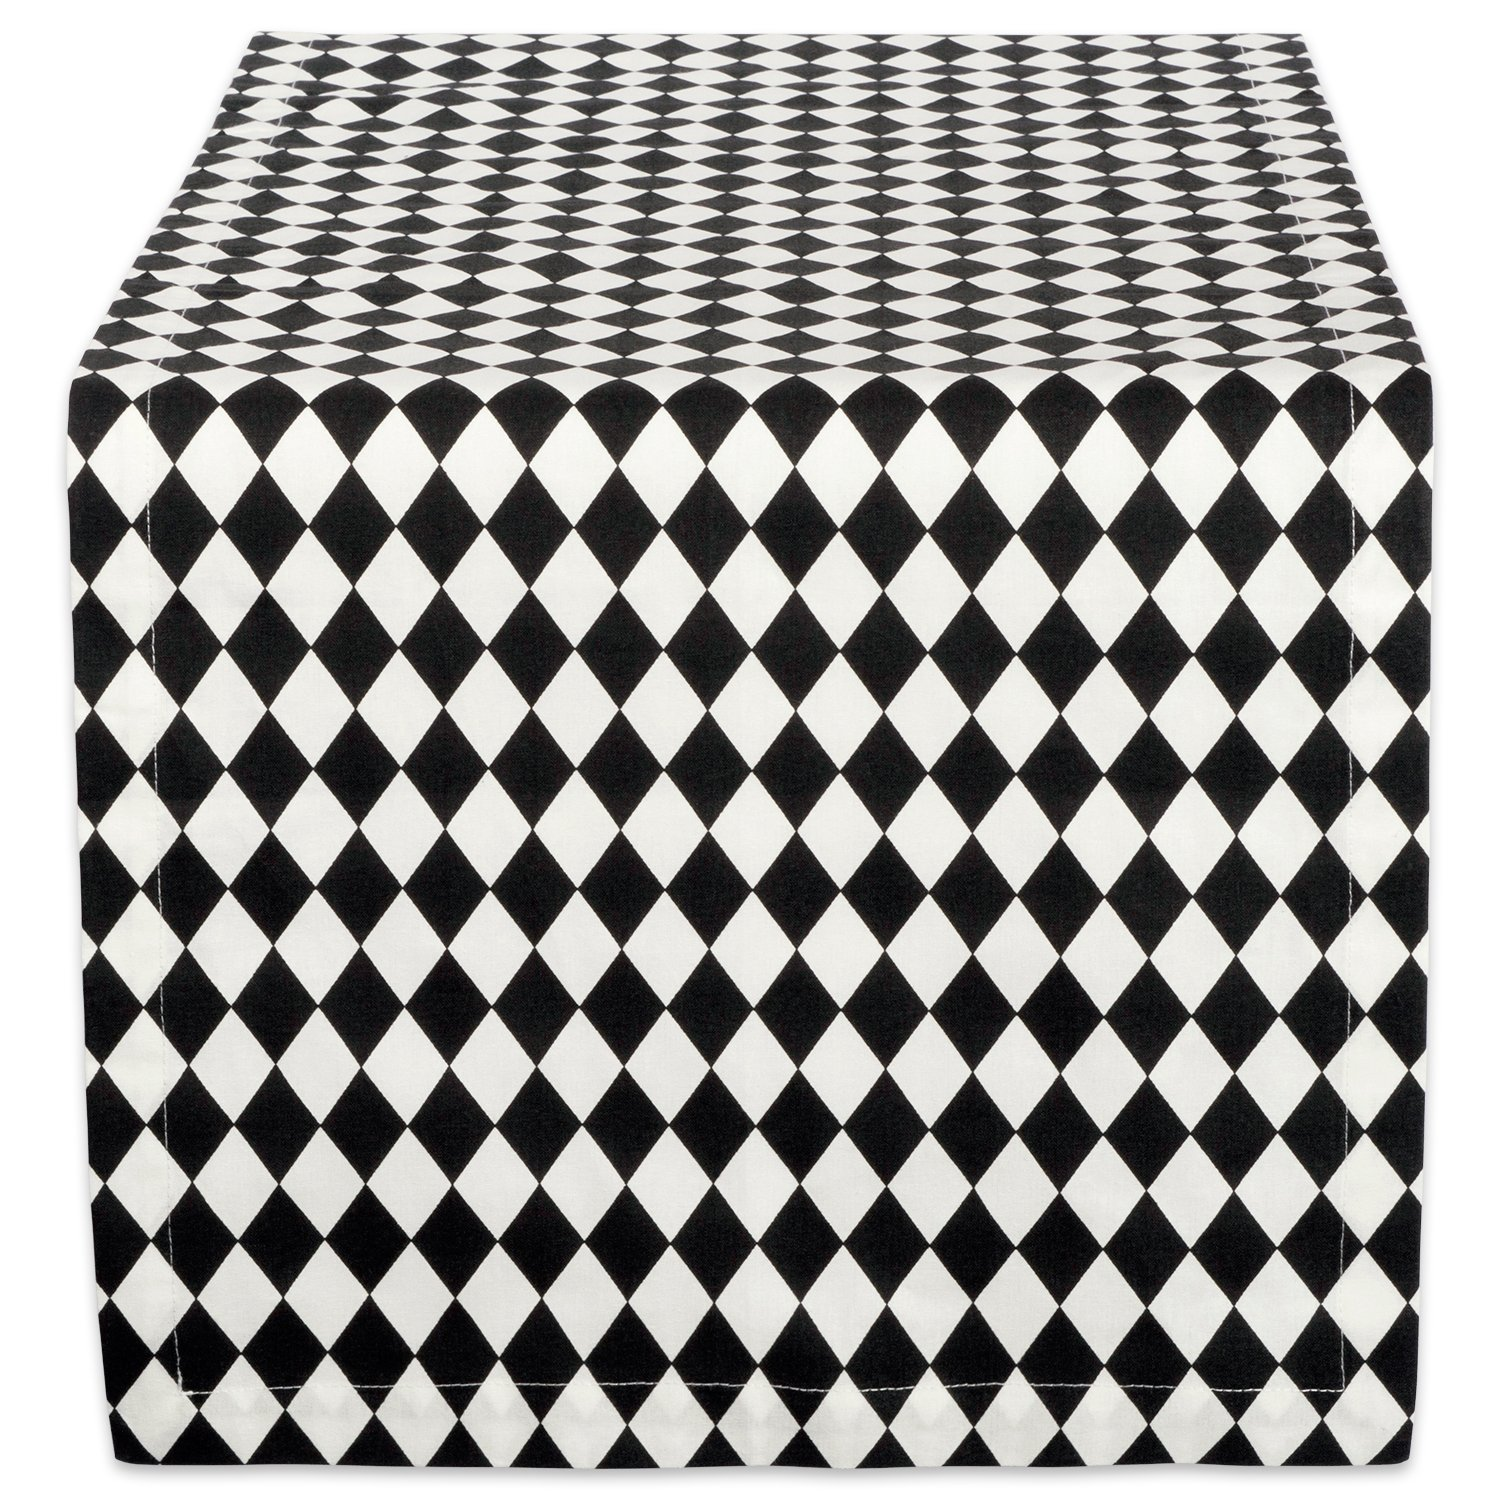 DII 14x108 Cotton Table Runner, Black & Cream Harlequin - Perfect for Halloween, Dinner Parties and Scary Movie Nights